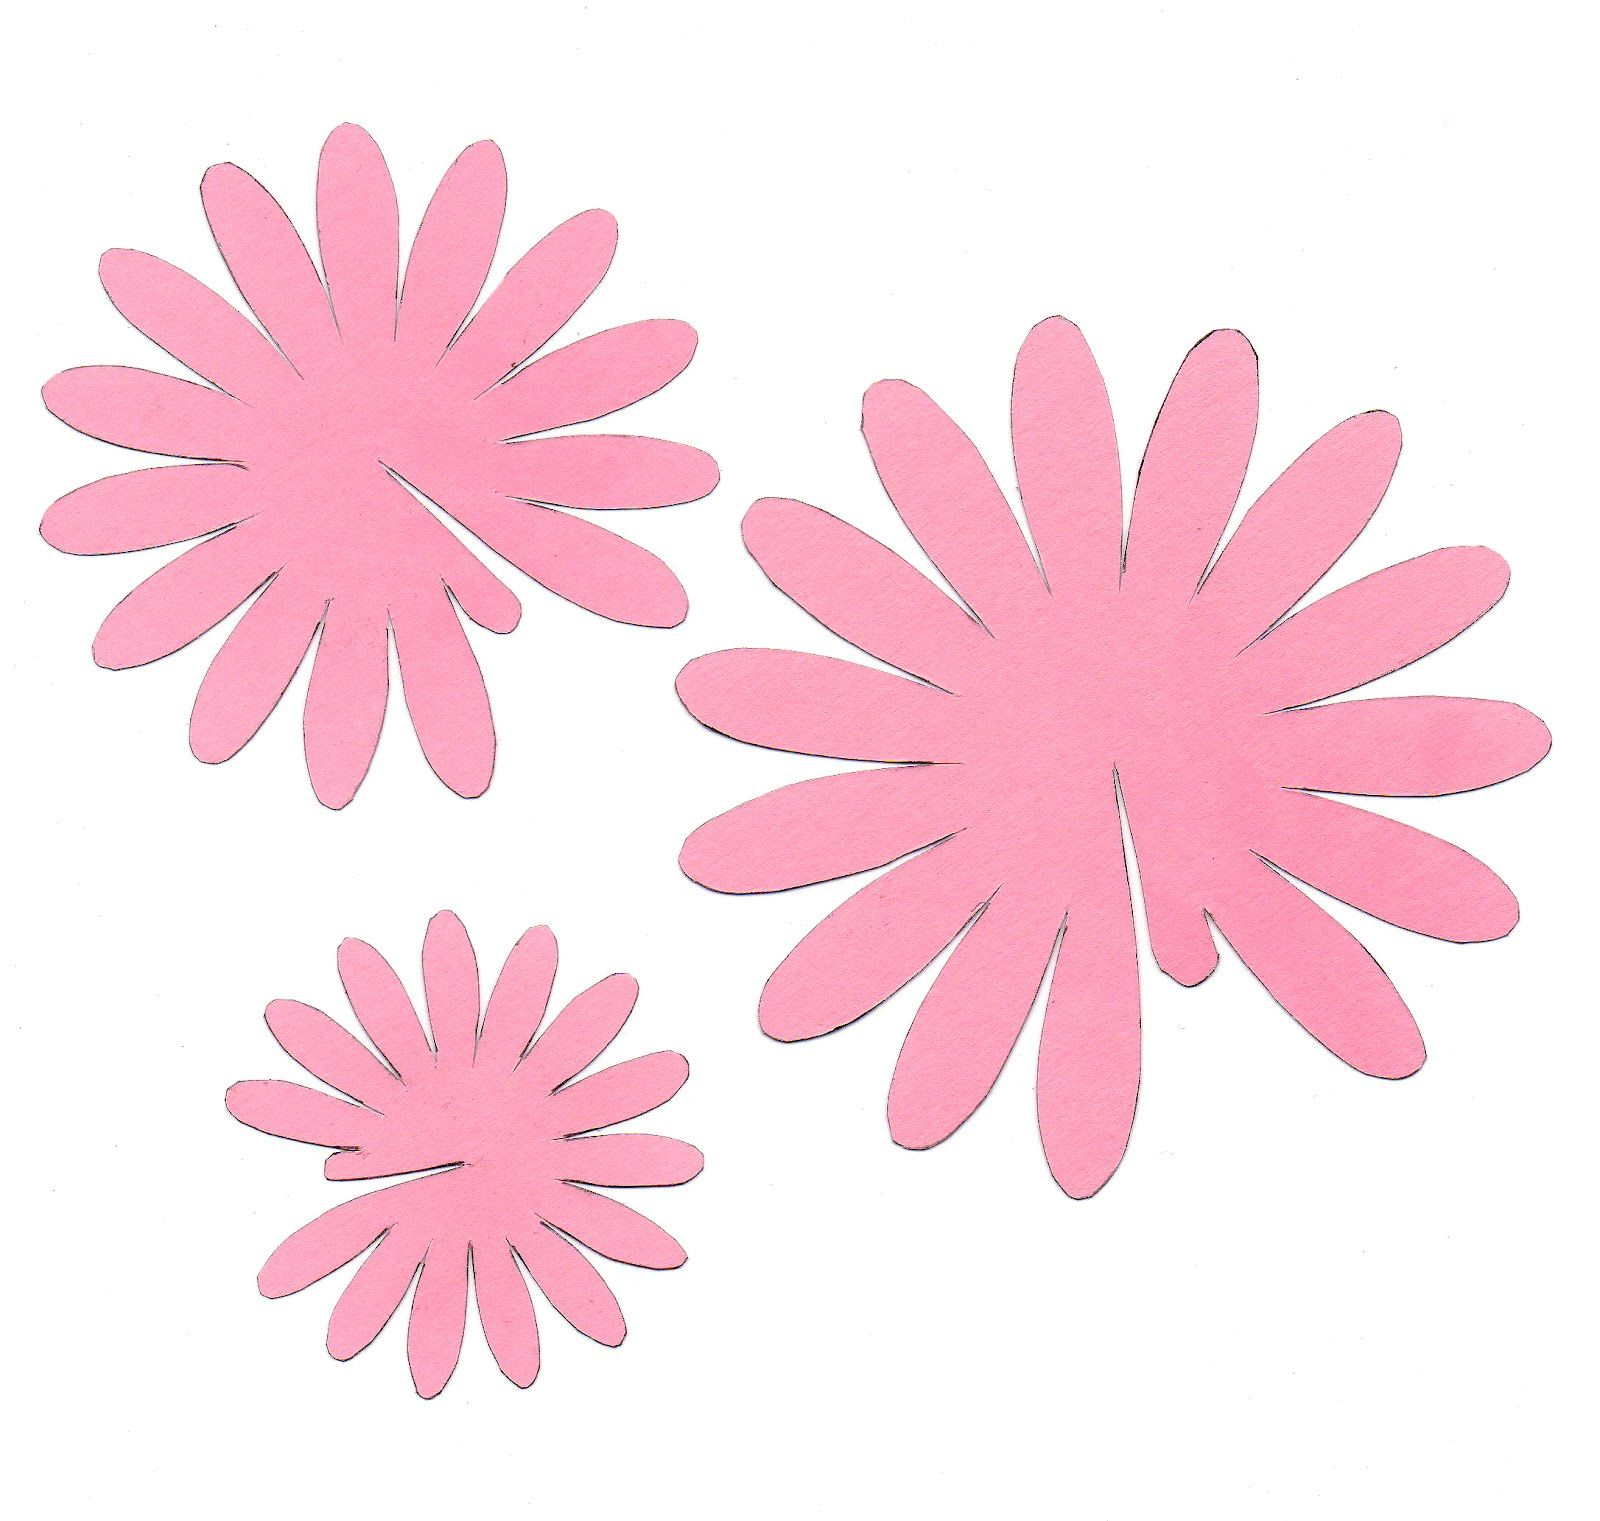 My Favorite Flower Is Probably A Gerbera Daisy I Love The Bright Colors They Come In They Seem To Last Quit Flower Template Flower Petal Template Paper Daisy